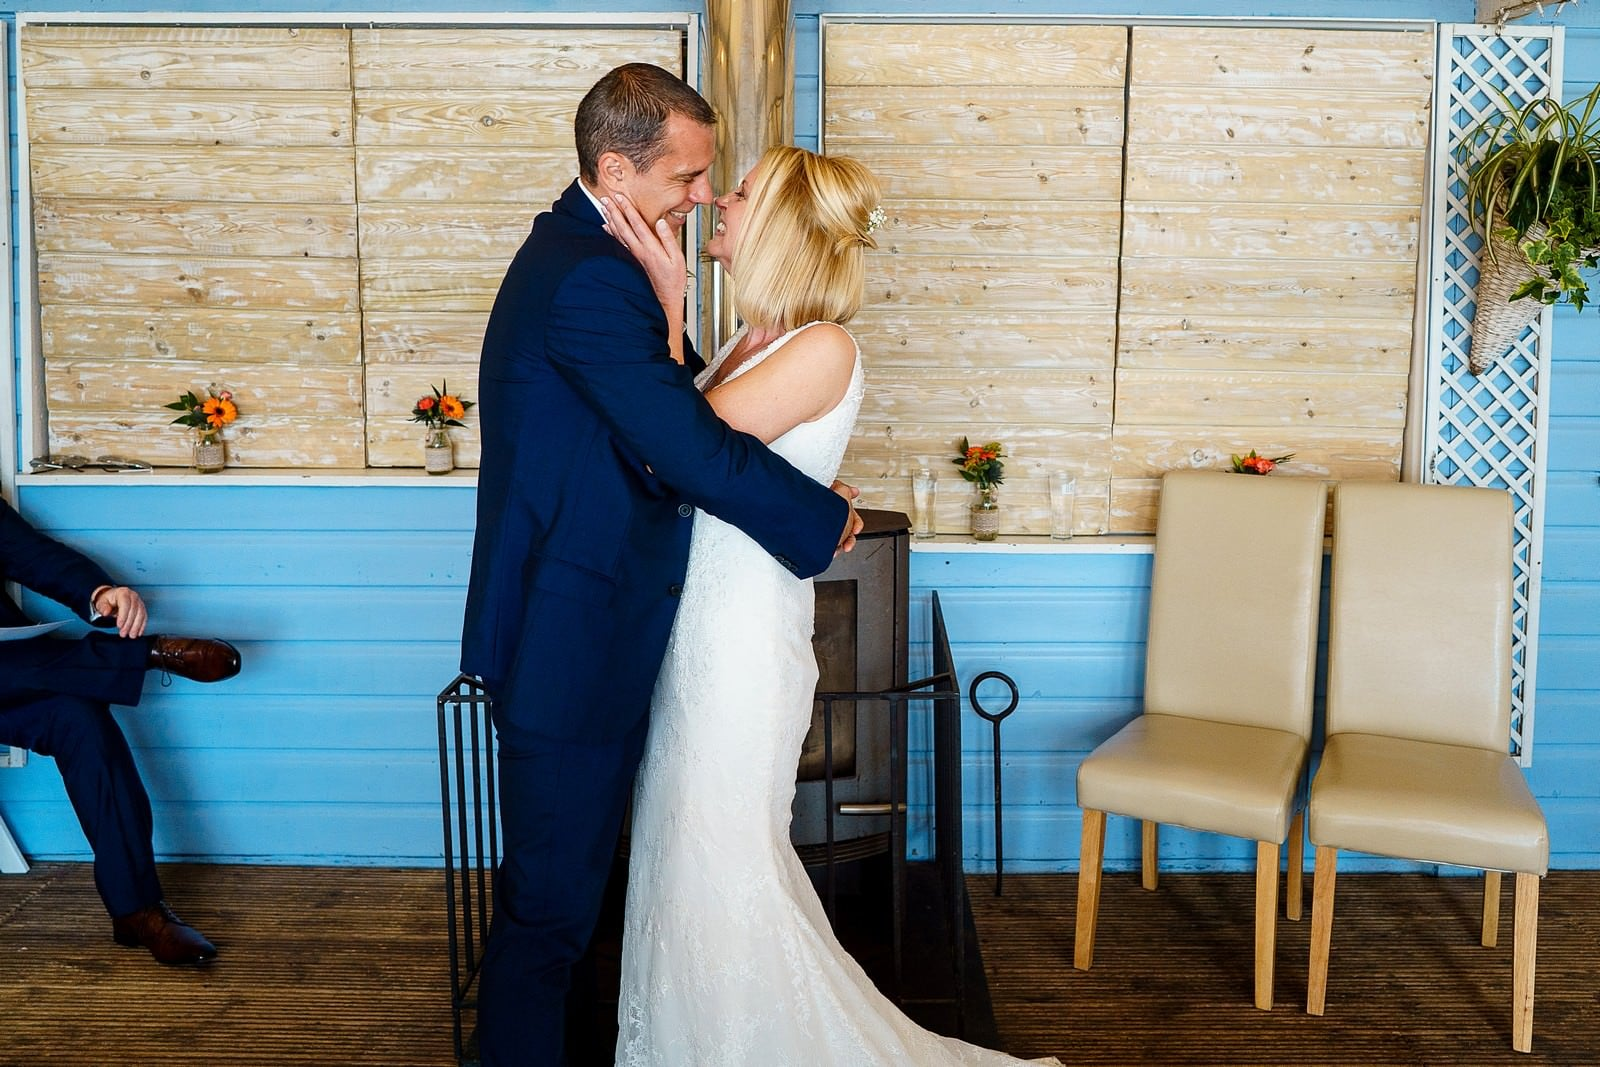 getting married at lusty glaze in newquay